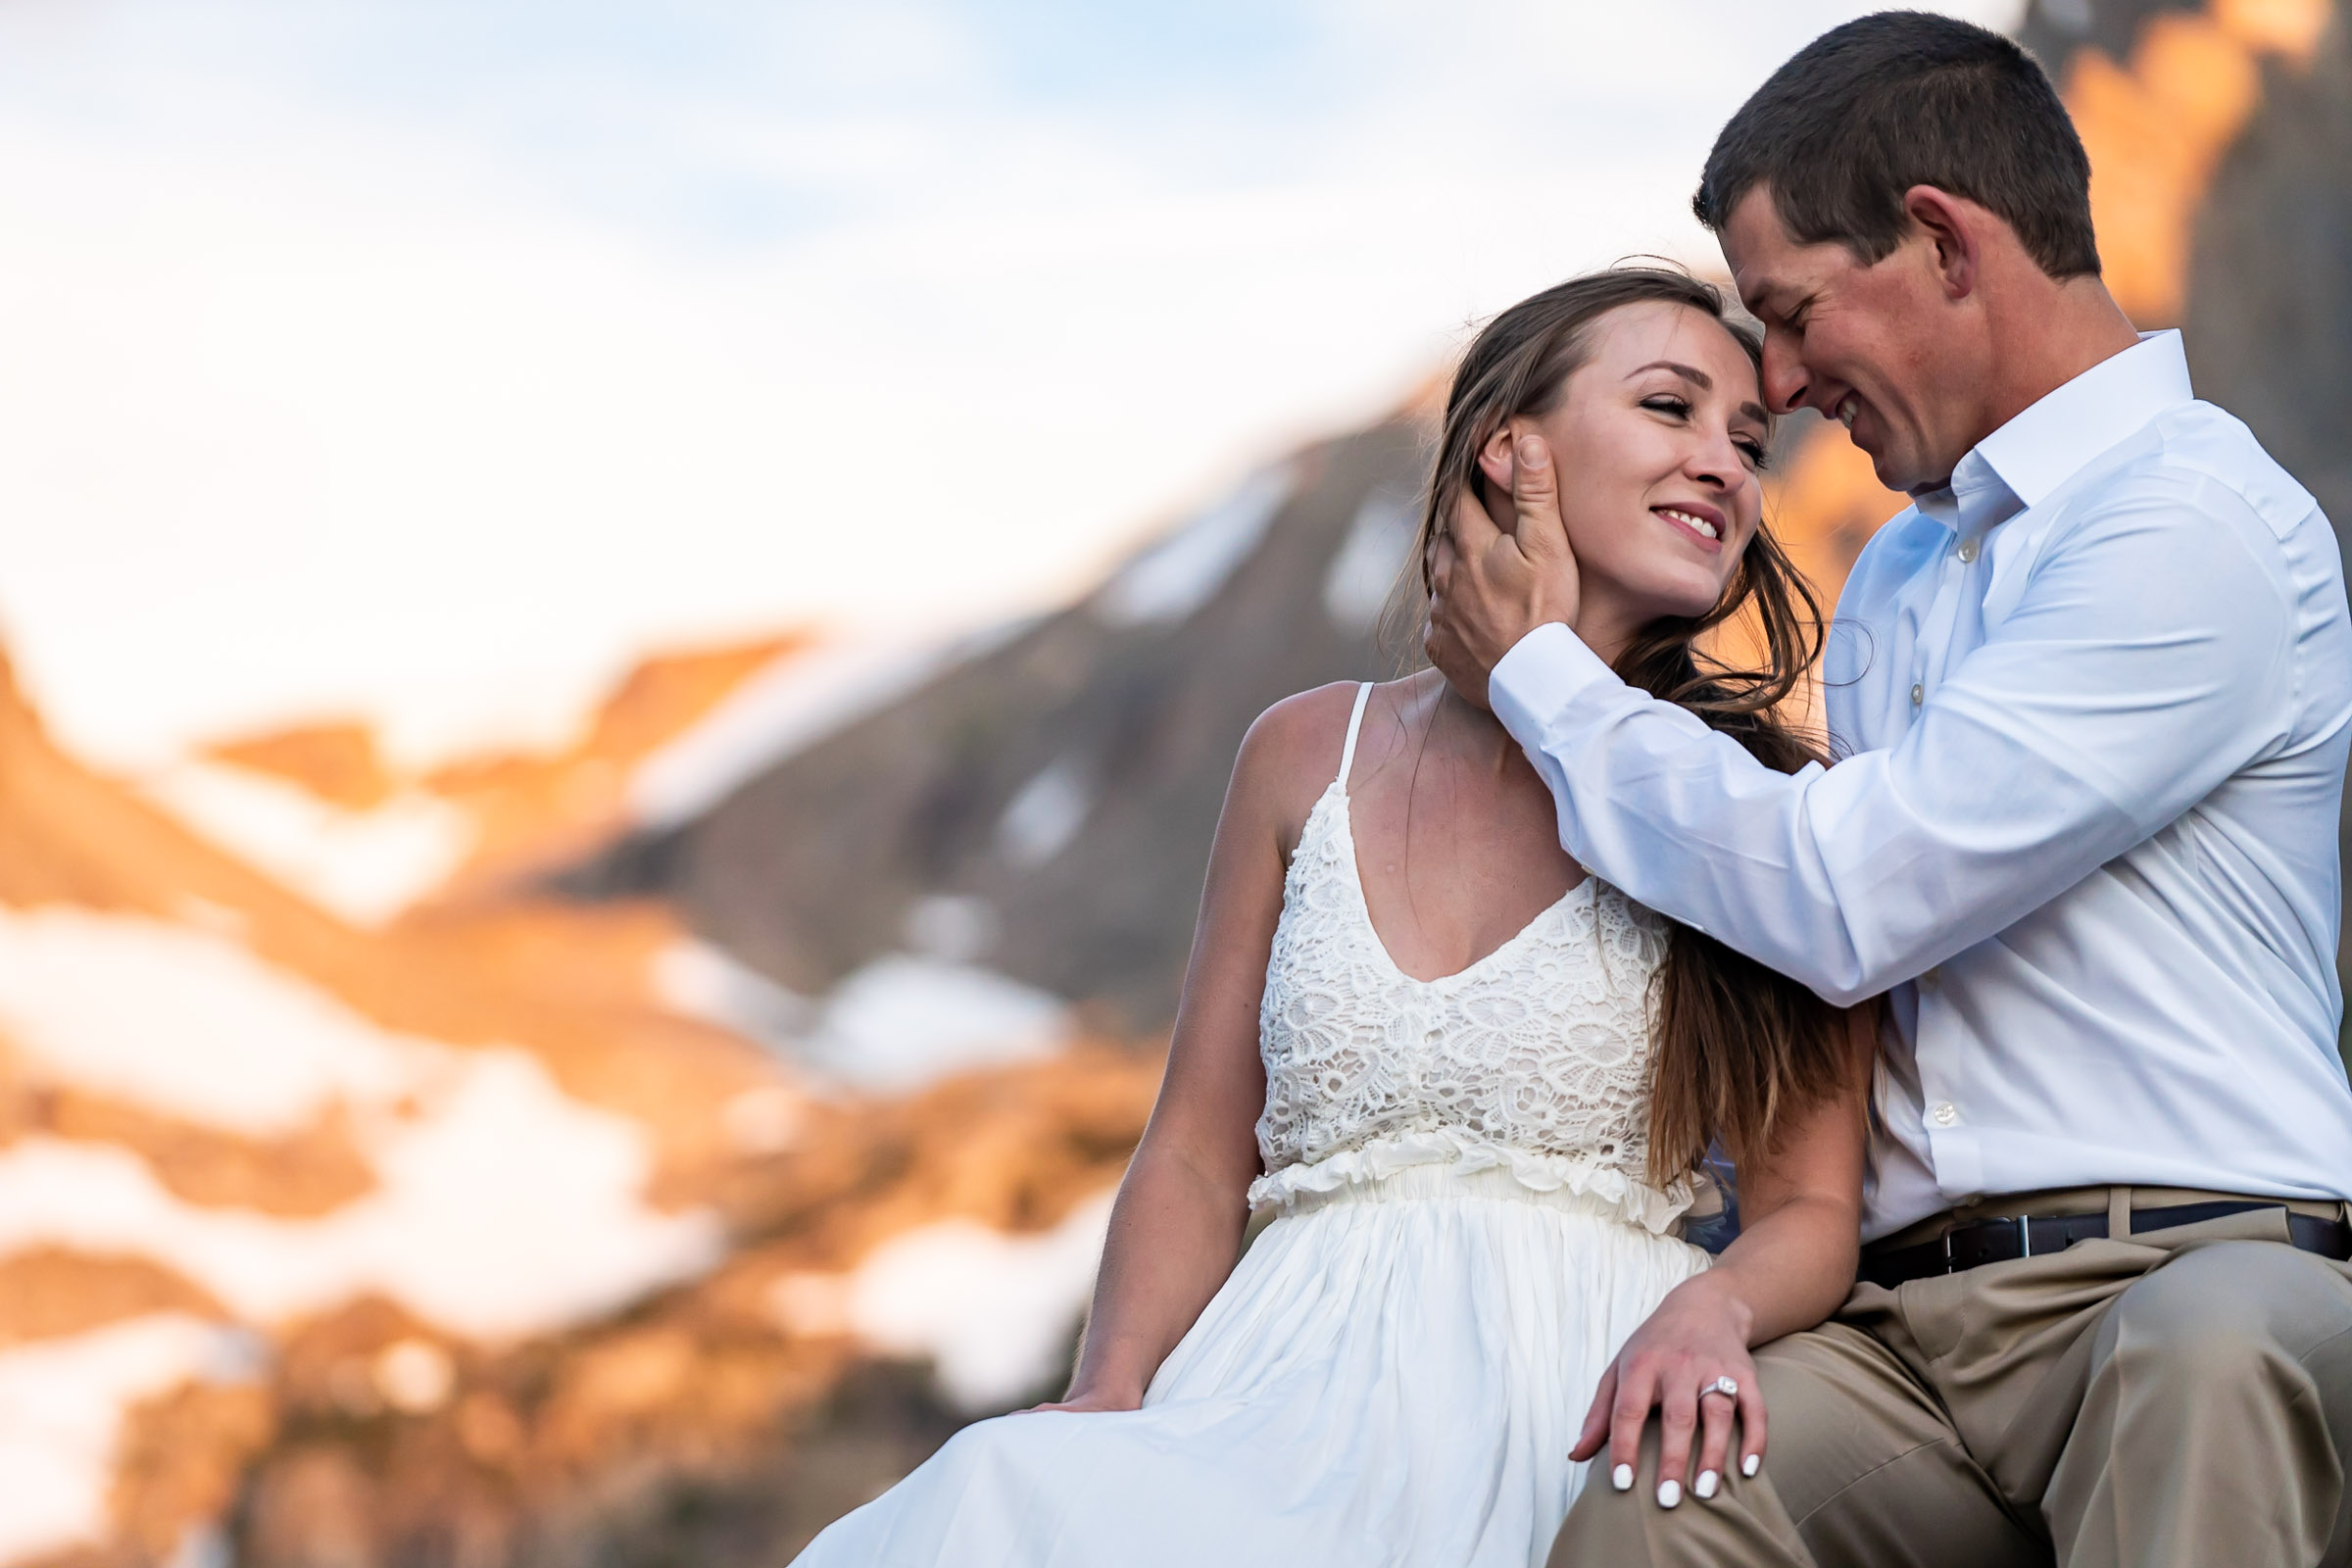 A man and woman are seated, he holds her face gently while she smiles, the brilliant alpineglow lighting up the mountain behind them. Photo by Gabby Jockers Photography. Rocky mountain national park engagement photography, Rocky mountain national park engagement photos, Rocky mountain national park engagement session, RMNP elopement, dream lake engagement photos, dream lake engagement session, estes park engagement, estes park engagement photos, adventure photos, adventure session, couples photos